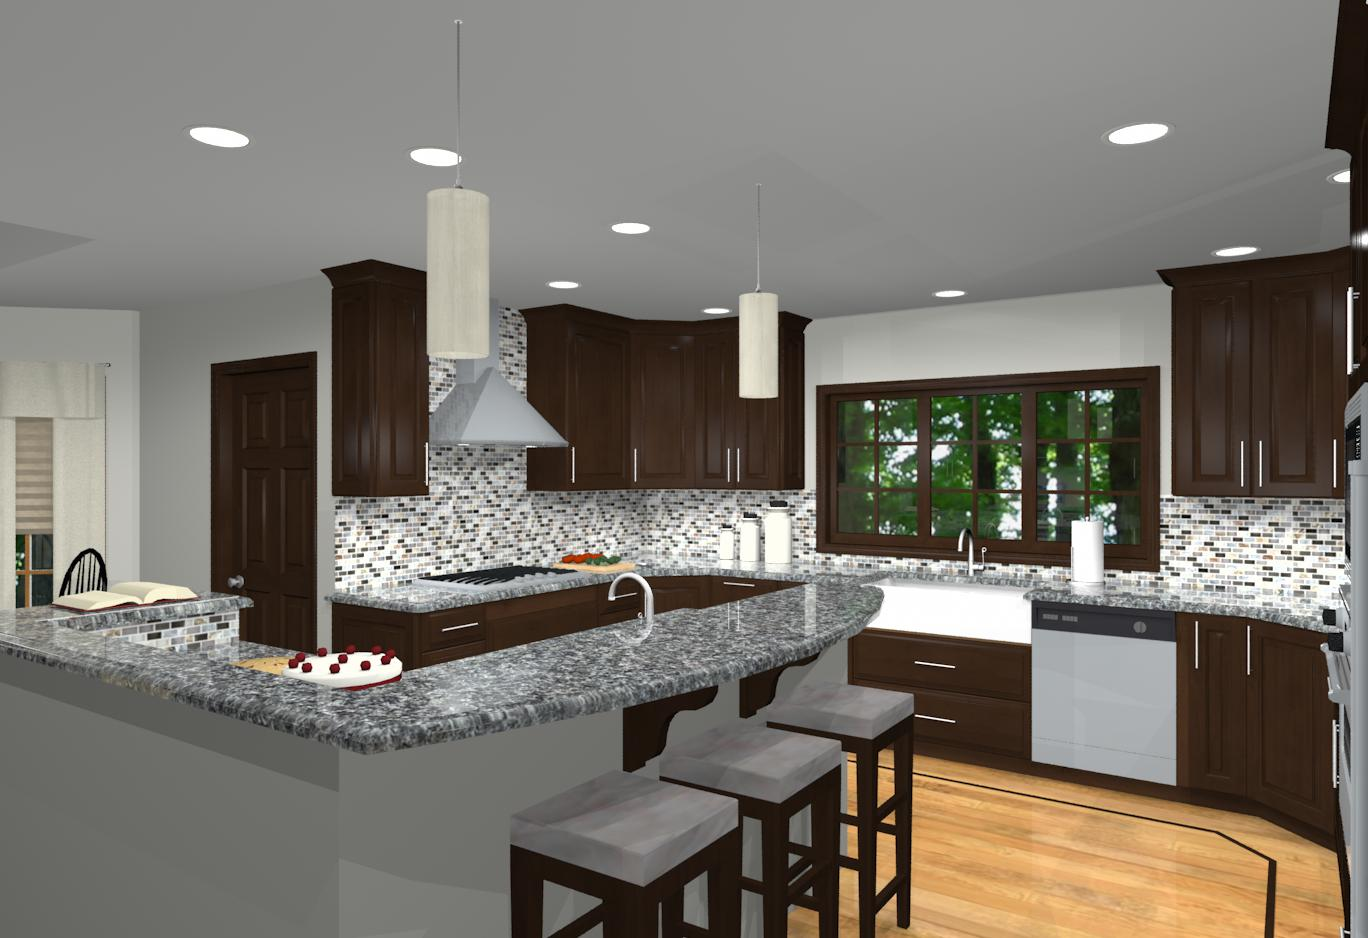 Marvelous Projects Include Additions, Add A Levels, Bedroom Suites, New Home  Construction, Kitchen Remodeling, Bathroom Remodeling, Interior  Renovations, ...